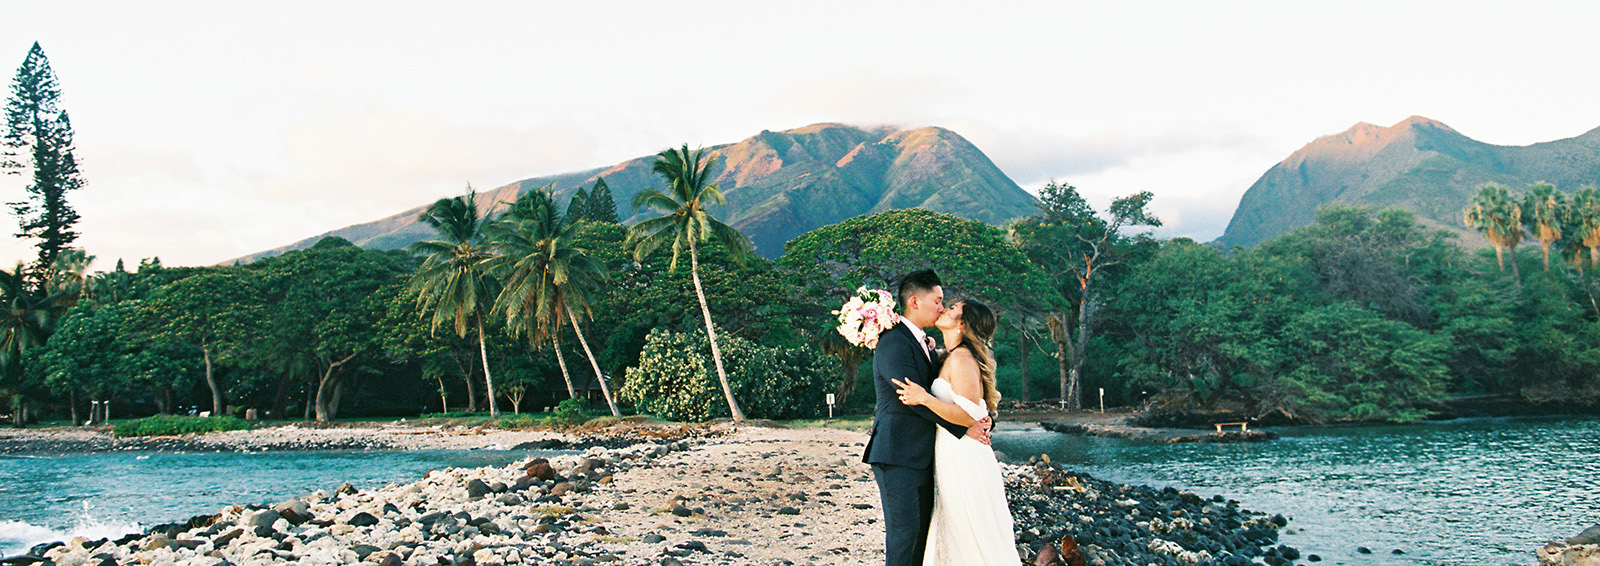 Maui Wedding Planner | Maui's Angels